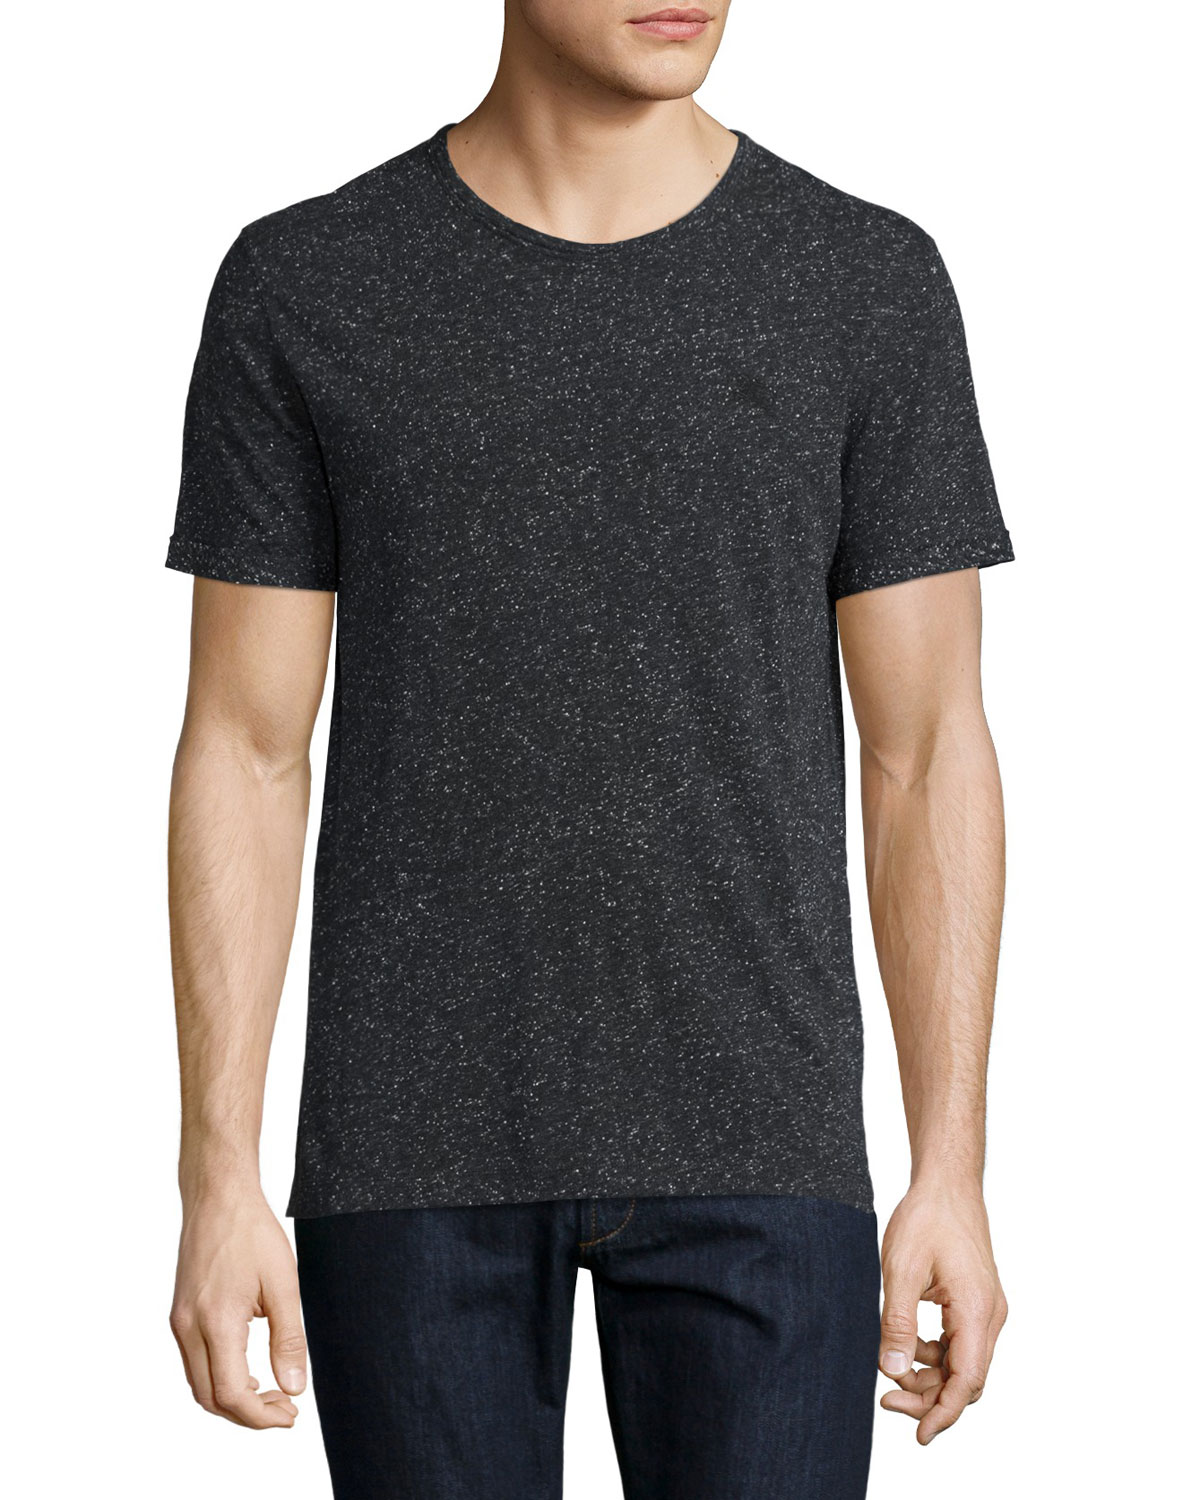 Millbrook Flecked Jersey T-Shirt, Black